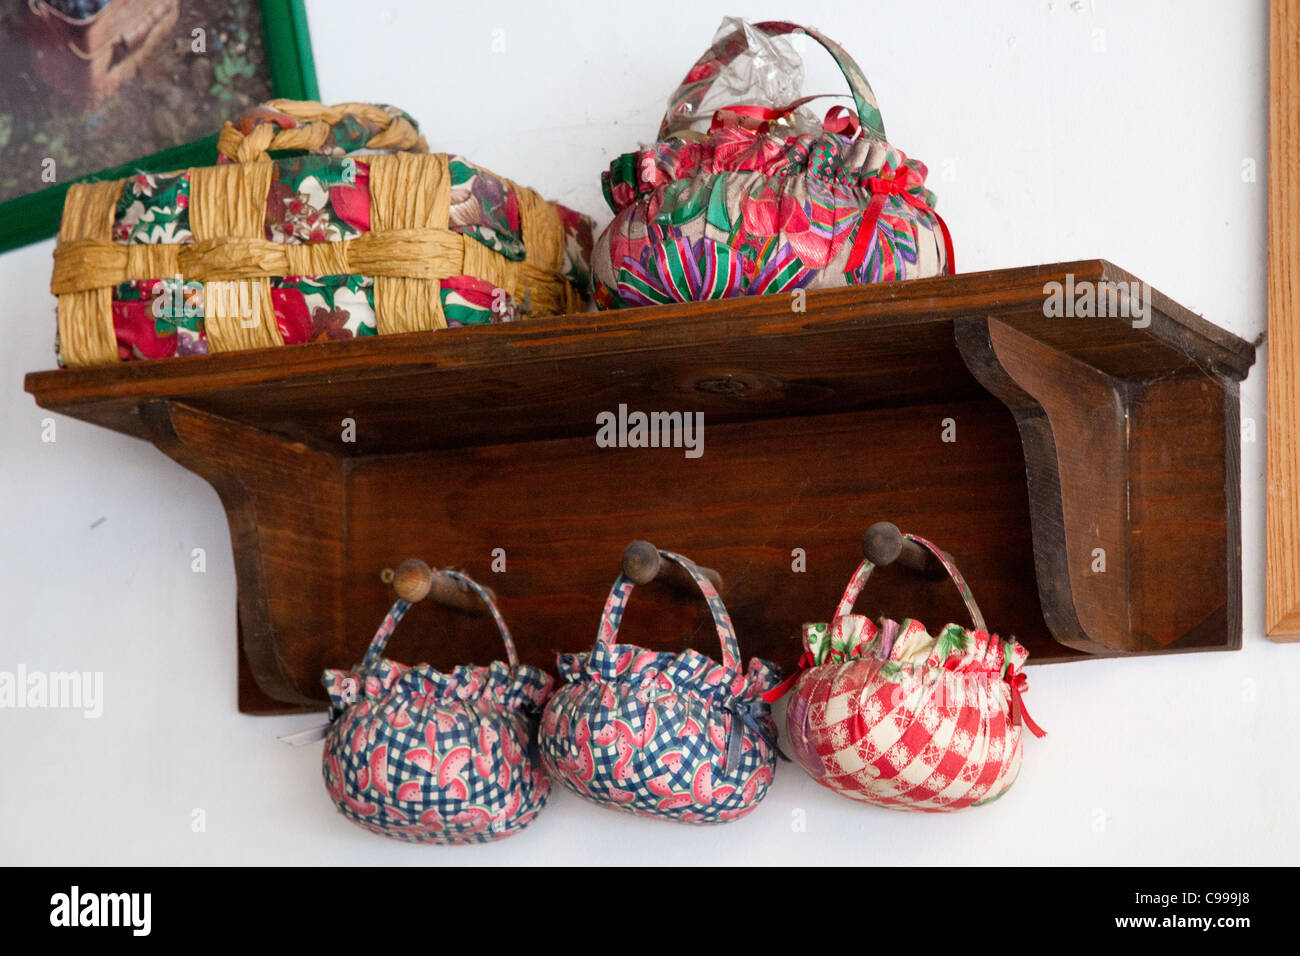 Display of hand made baskets in Sacramento - Stock Image